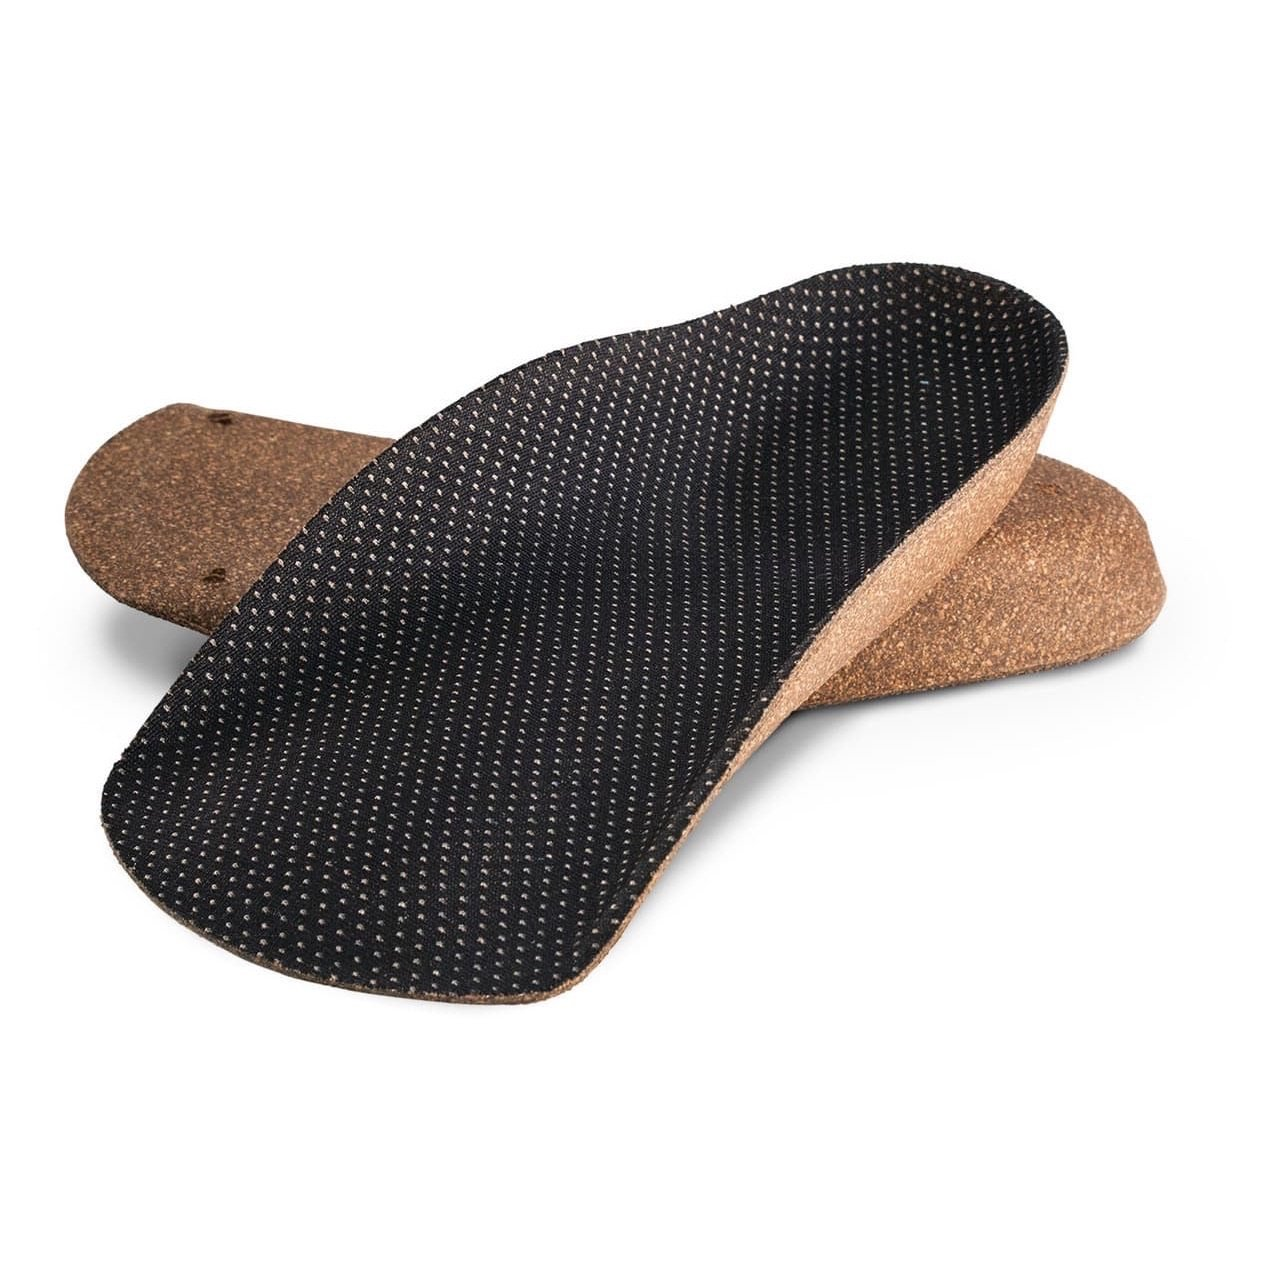 KFG 3/4 Orthotic Insoles - Cork Base - Kicks For Gents - Insole - Insole, MADE IN USA